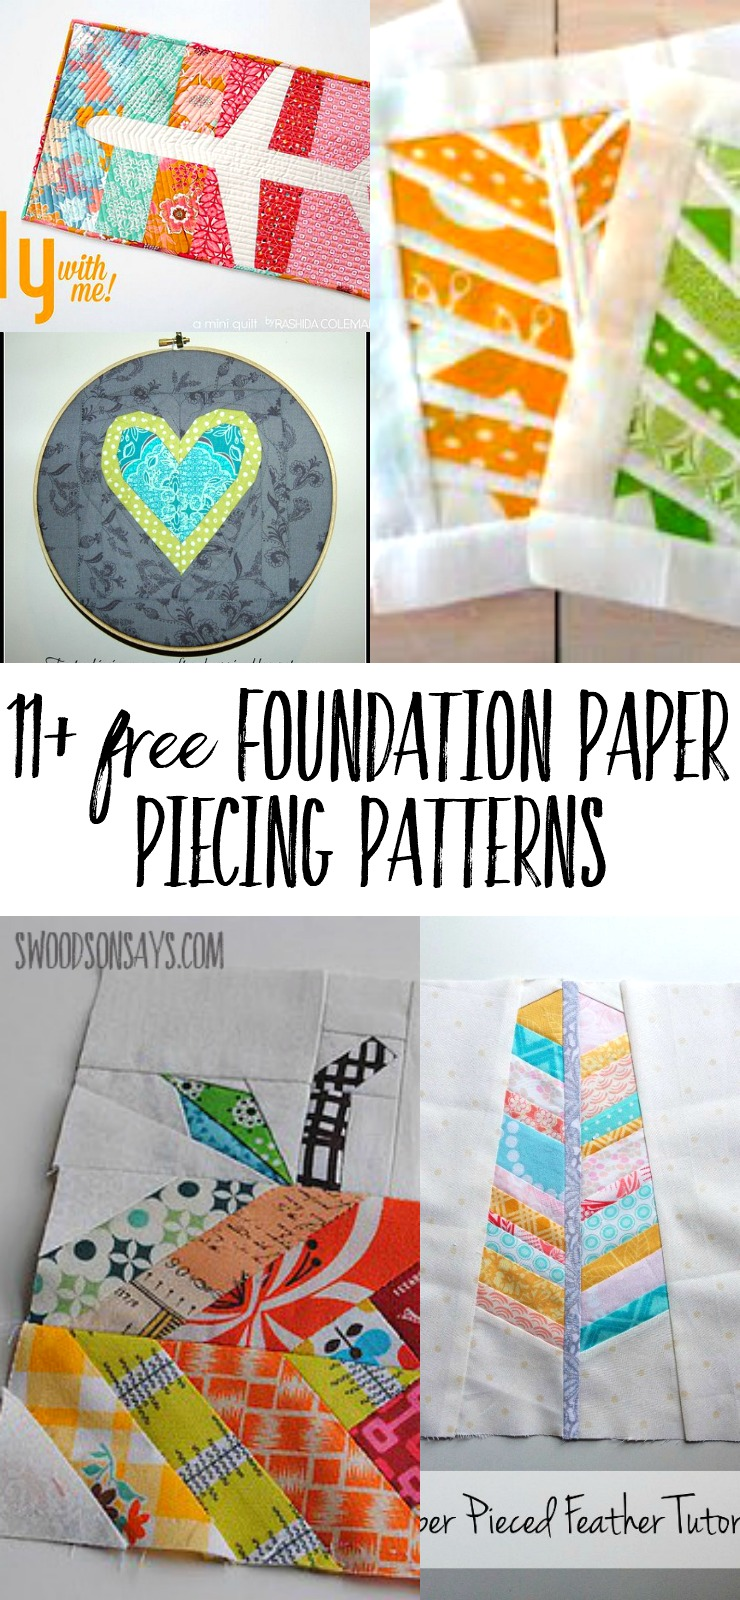 A list of free foundation paper piecing patterns! Download these PDF paper piecing patterns and try out this beginner friendly sewing method.